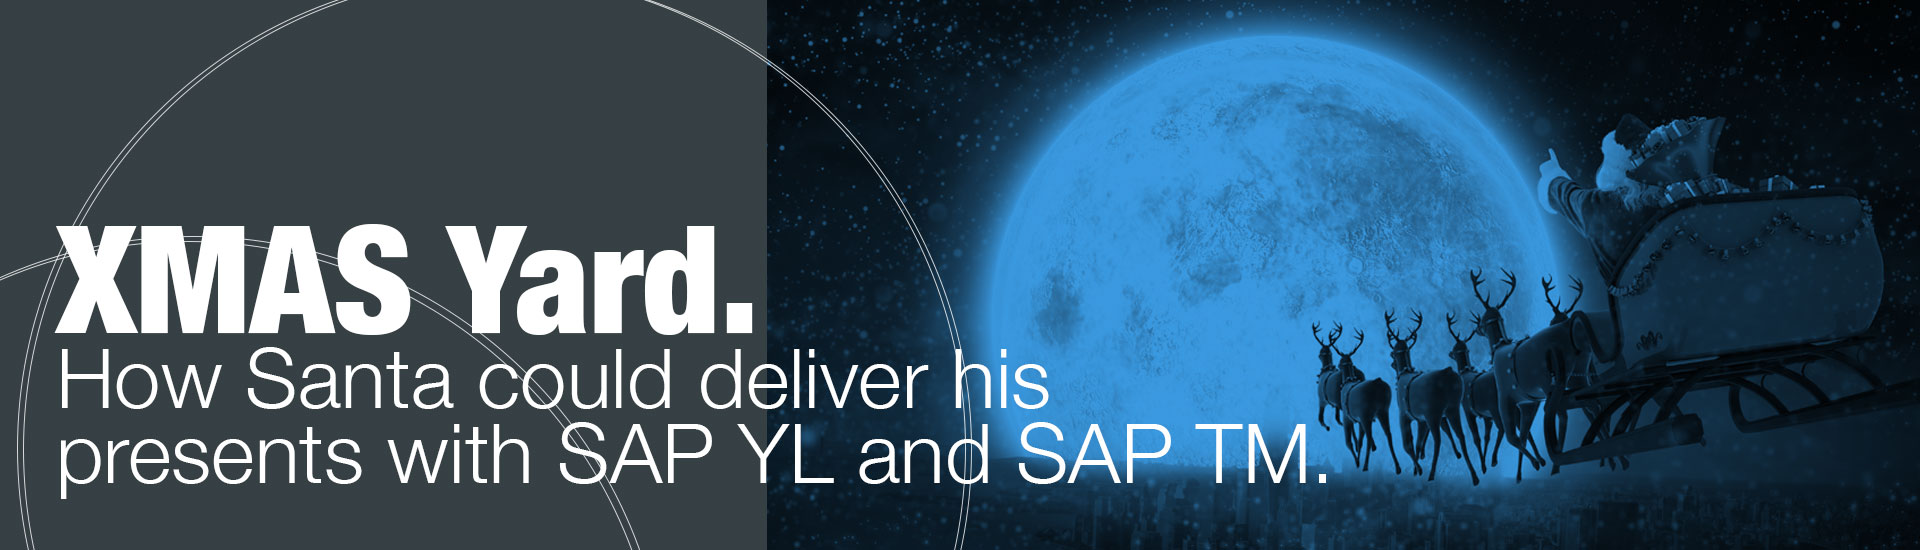 XMAS Yard – How Santa could deliver his presents with SAP YL and SAP TM | westernacher-consulting.com